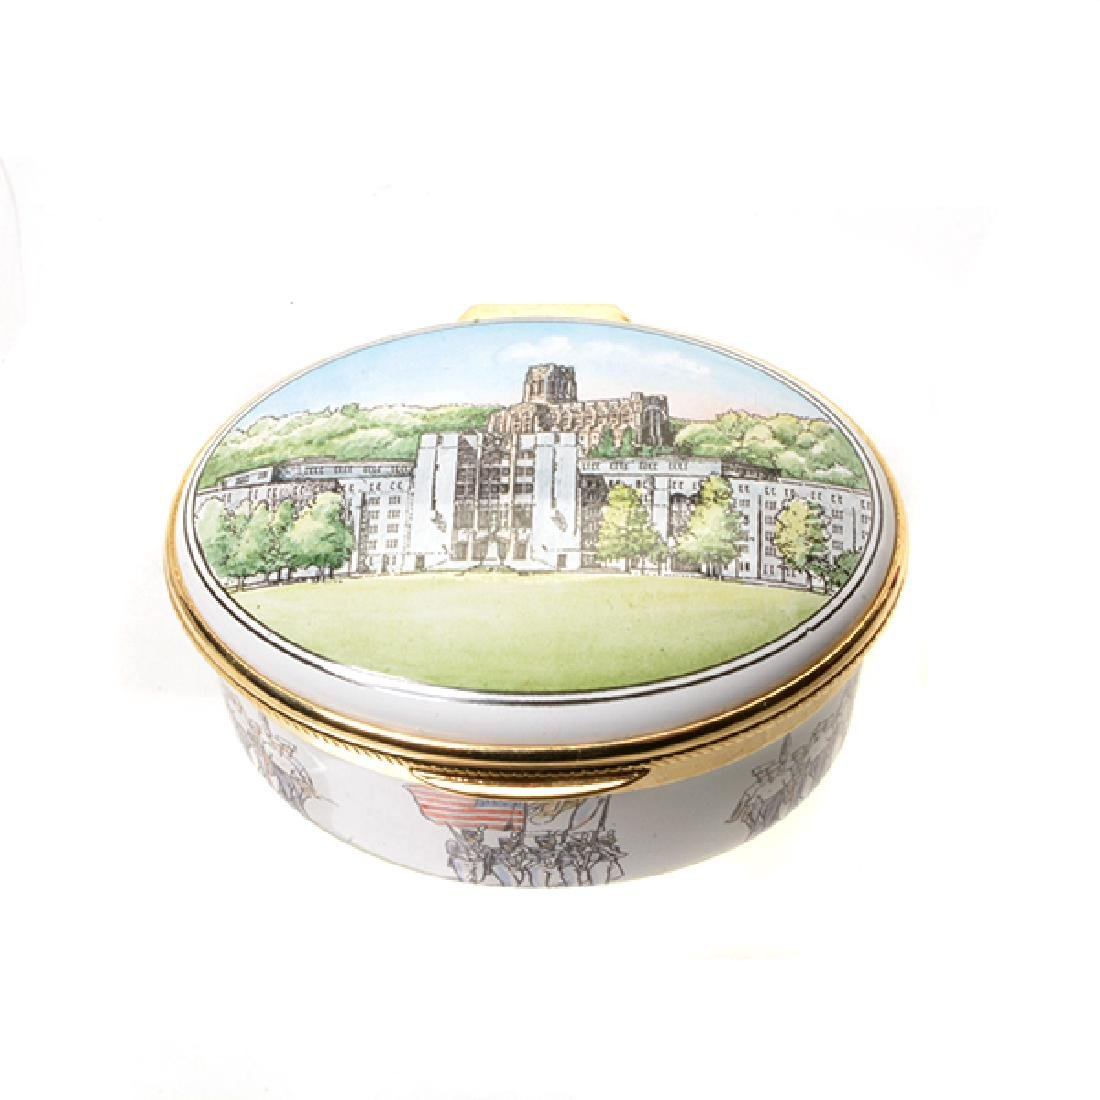 Collection of Porcelain Enameled Boxes - 3